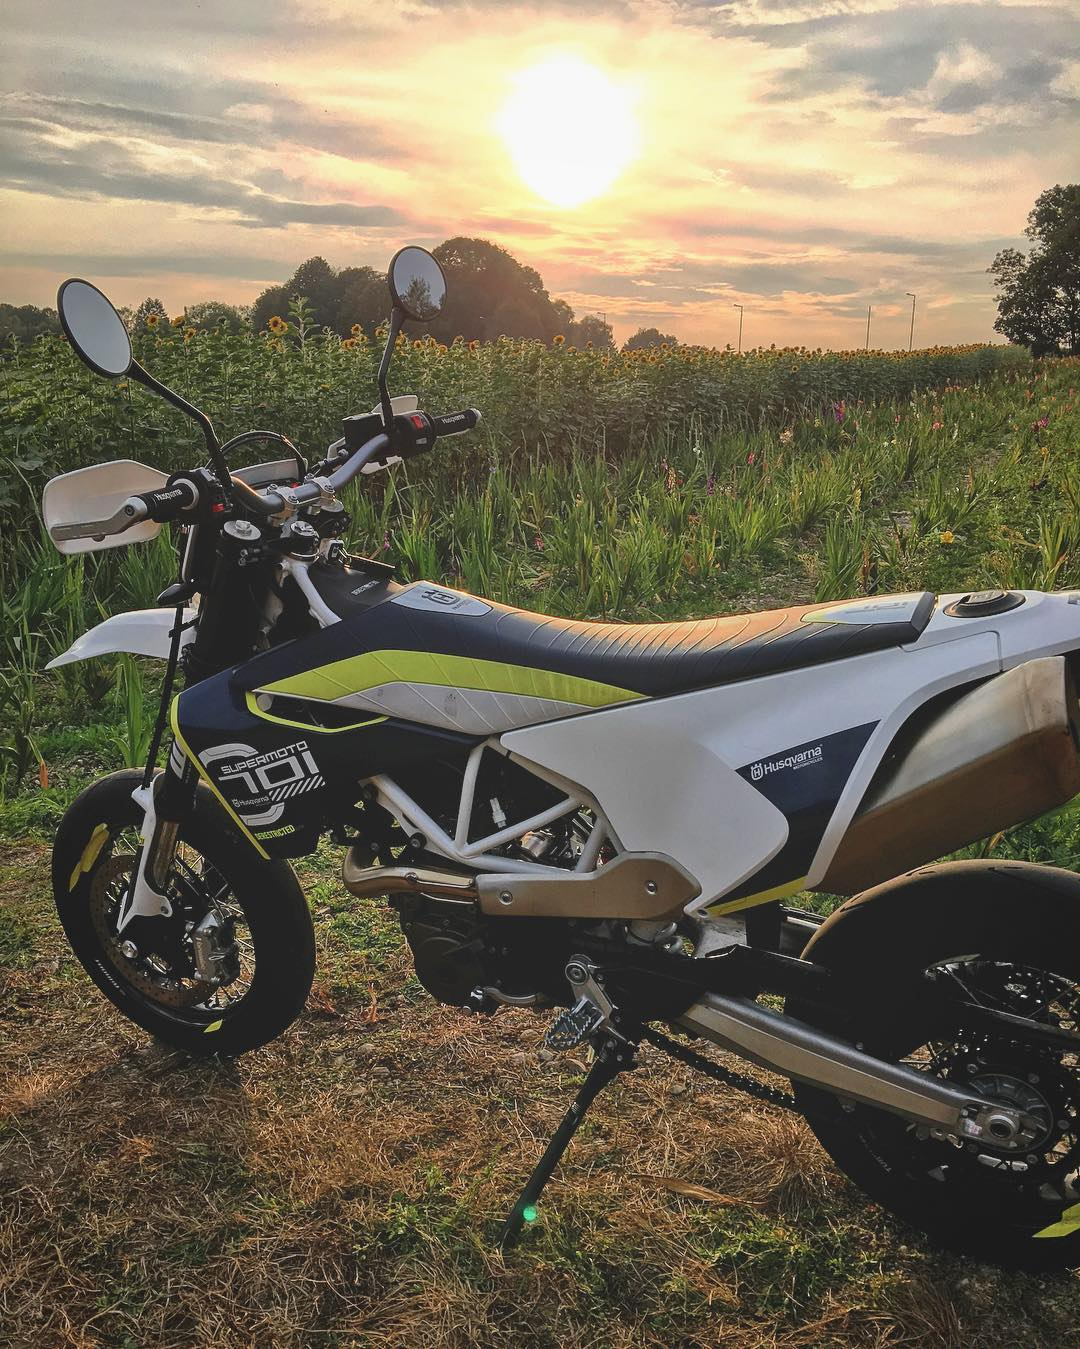 The #Husqvarna #701 , a sunset and a sunflower field. For real. @husqvarna1903 #supermoto